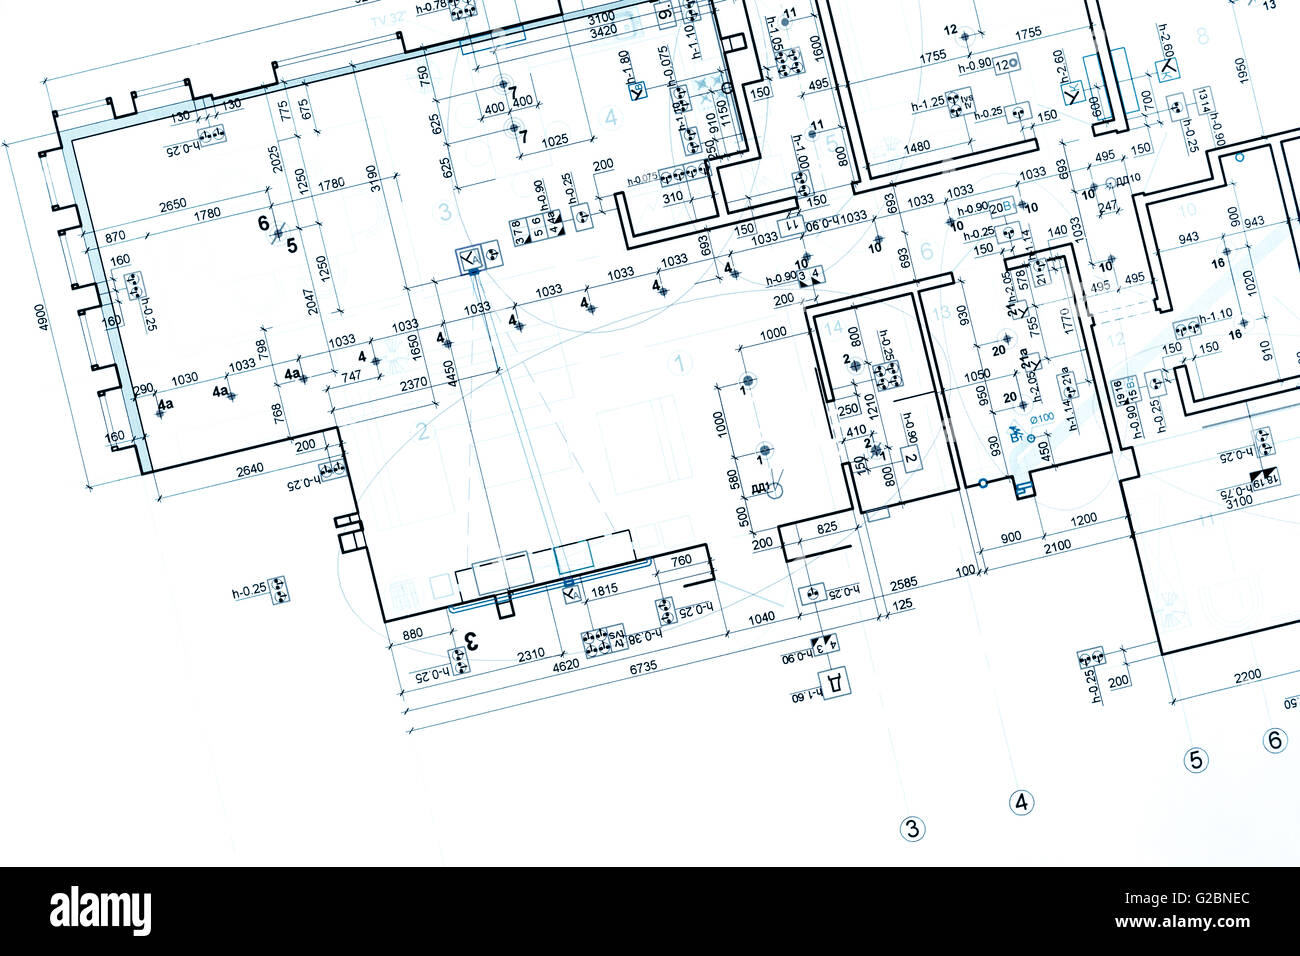 Blueprint floor plans architectural drawings construction stock blueprint floor plans architectural drawings construction background malvernweather Image collections